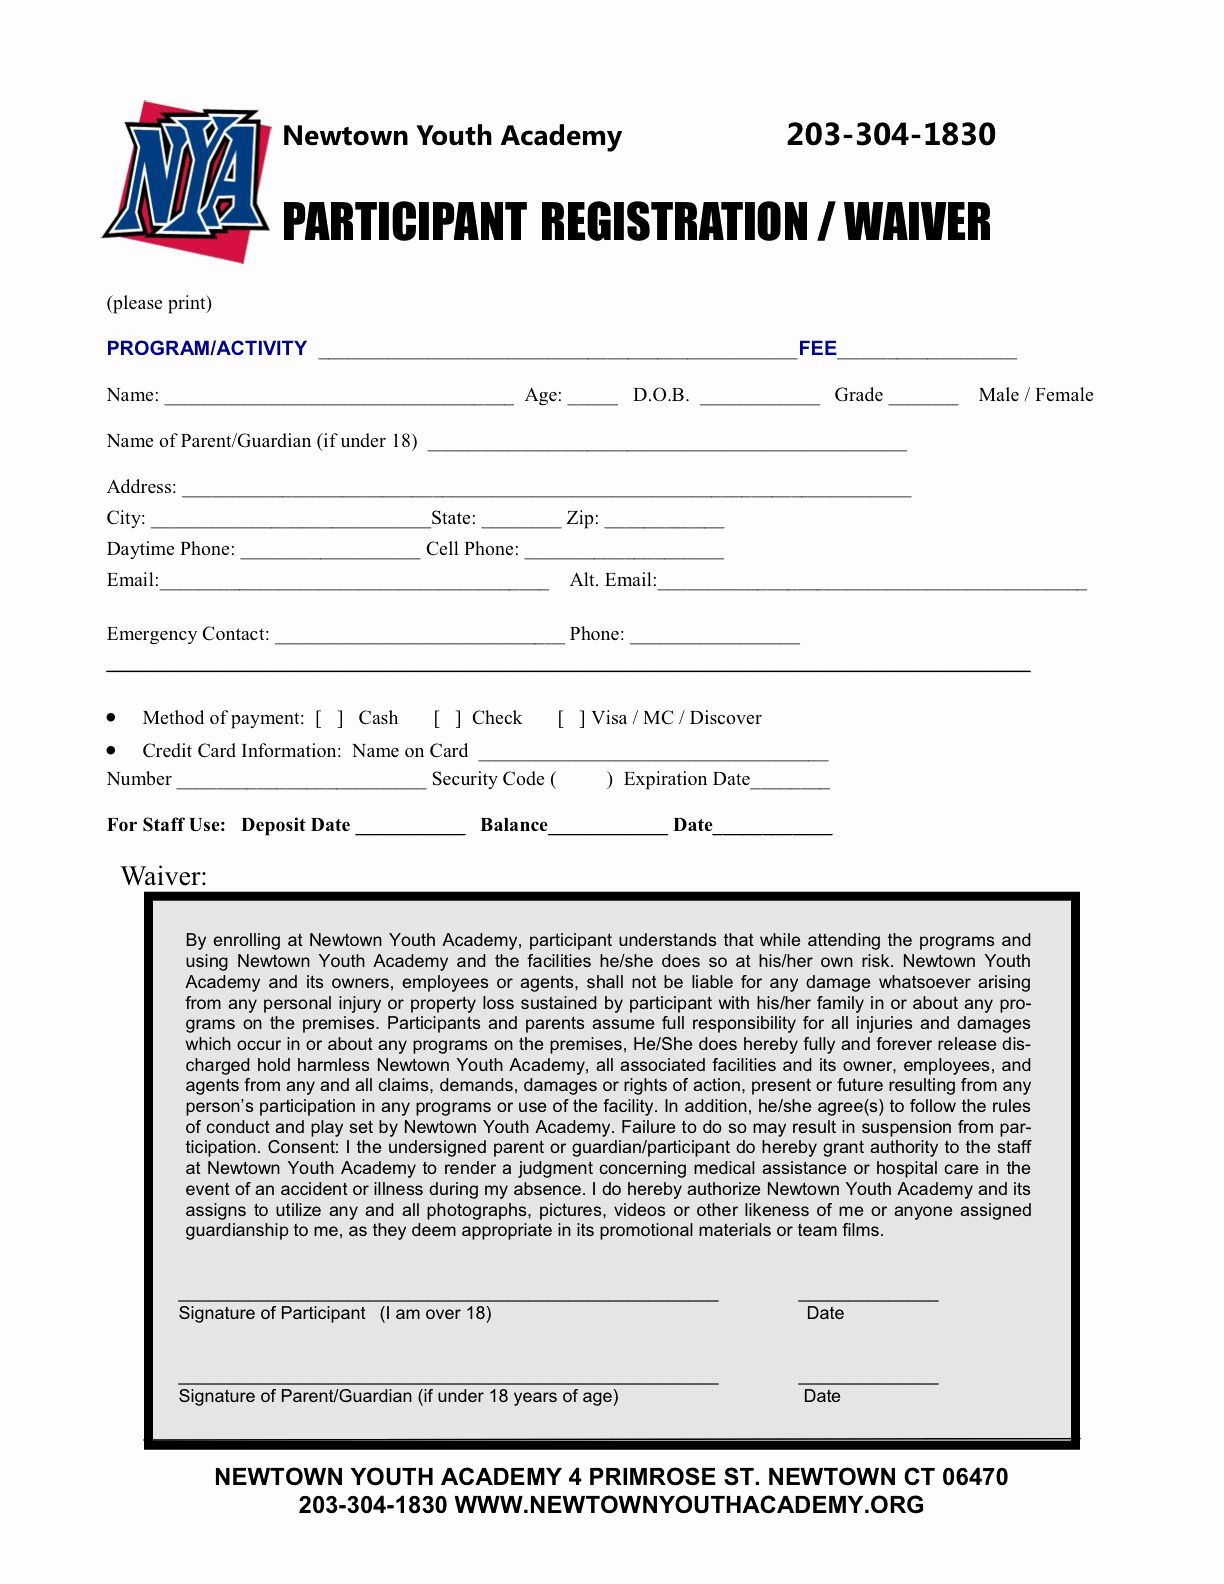 Sports Registration Form Template Word New Sign Up Form Template Word Portablegasgrillweber Registration Form Word Free Words